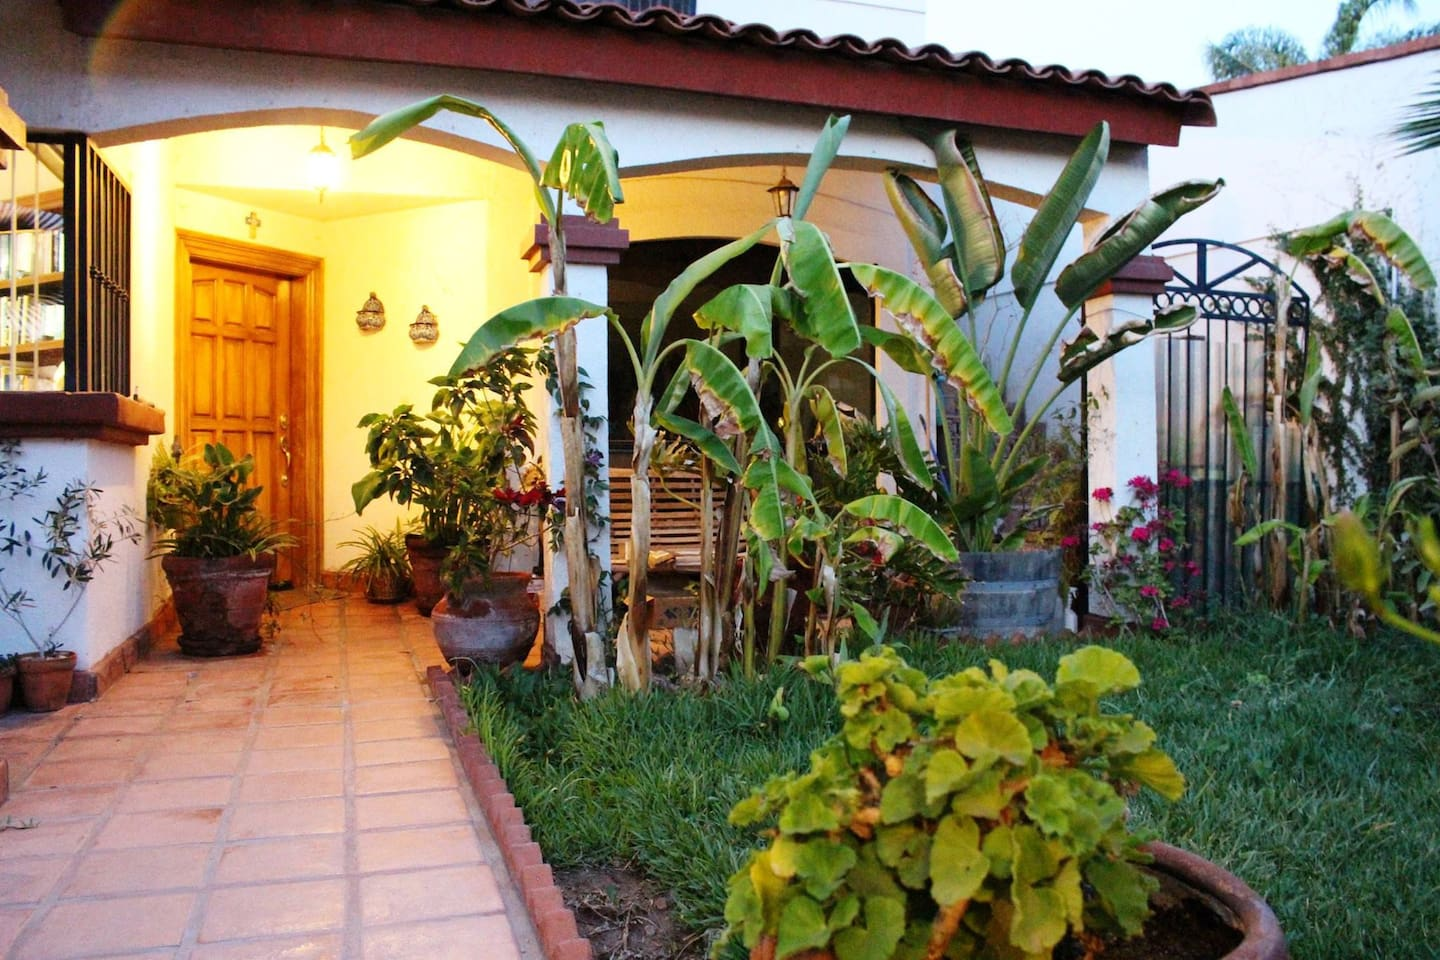 Front yard with banana trees, your way to casa Julia